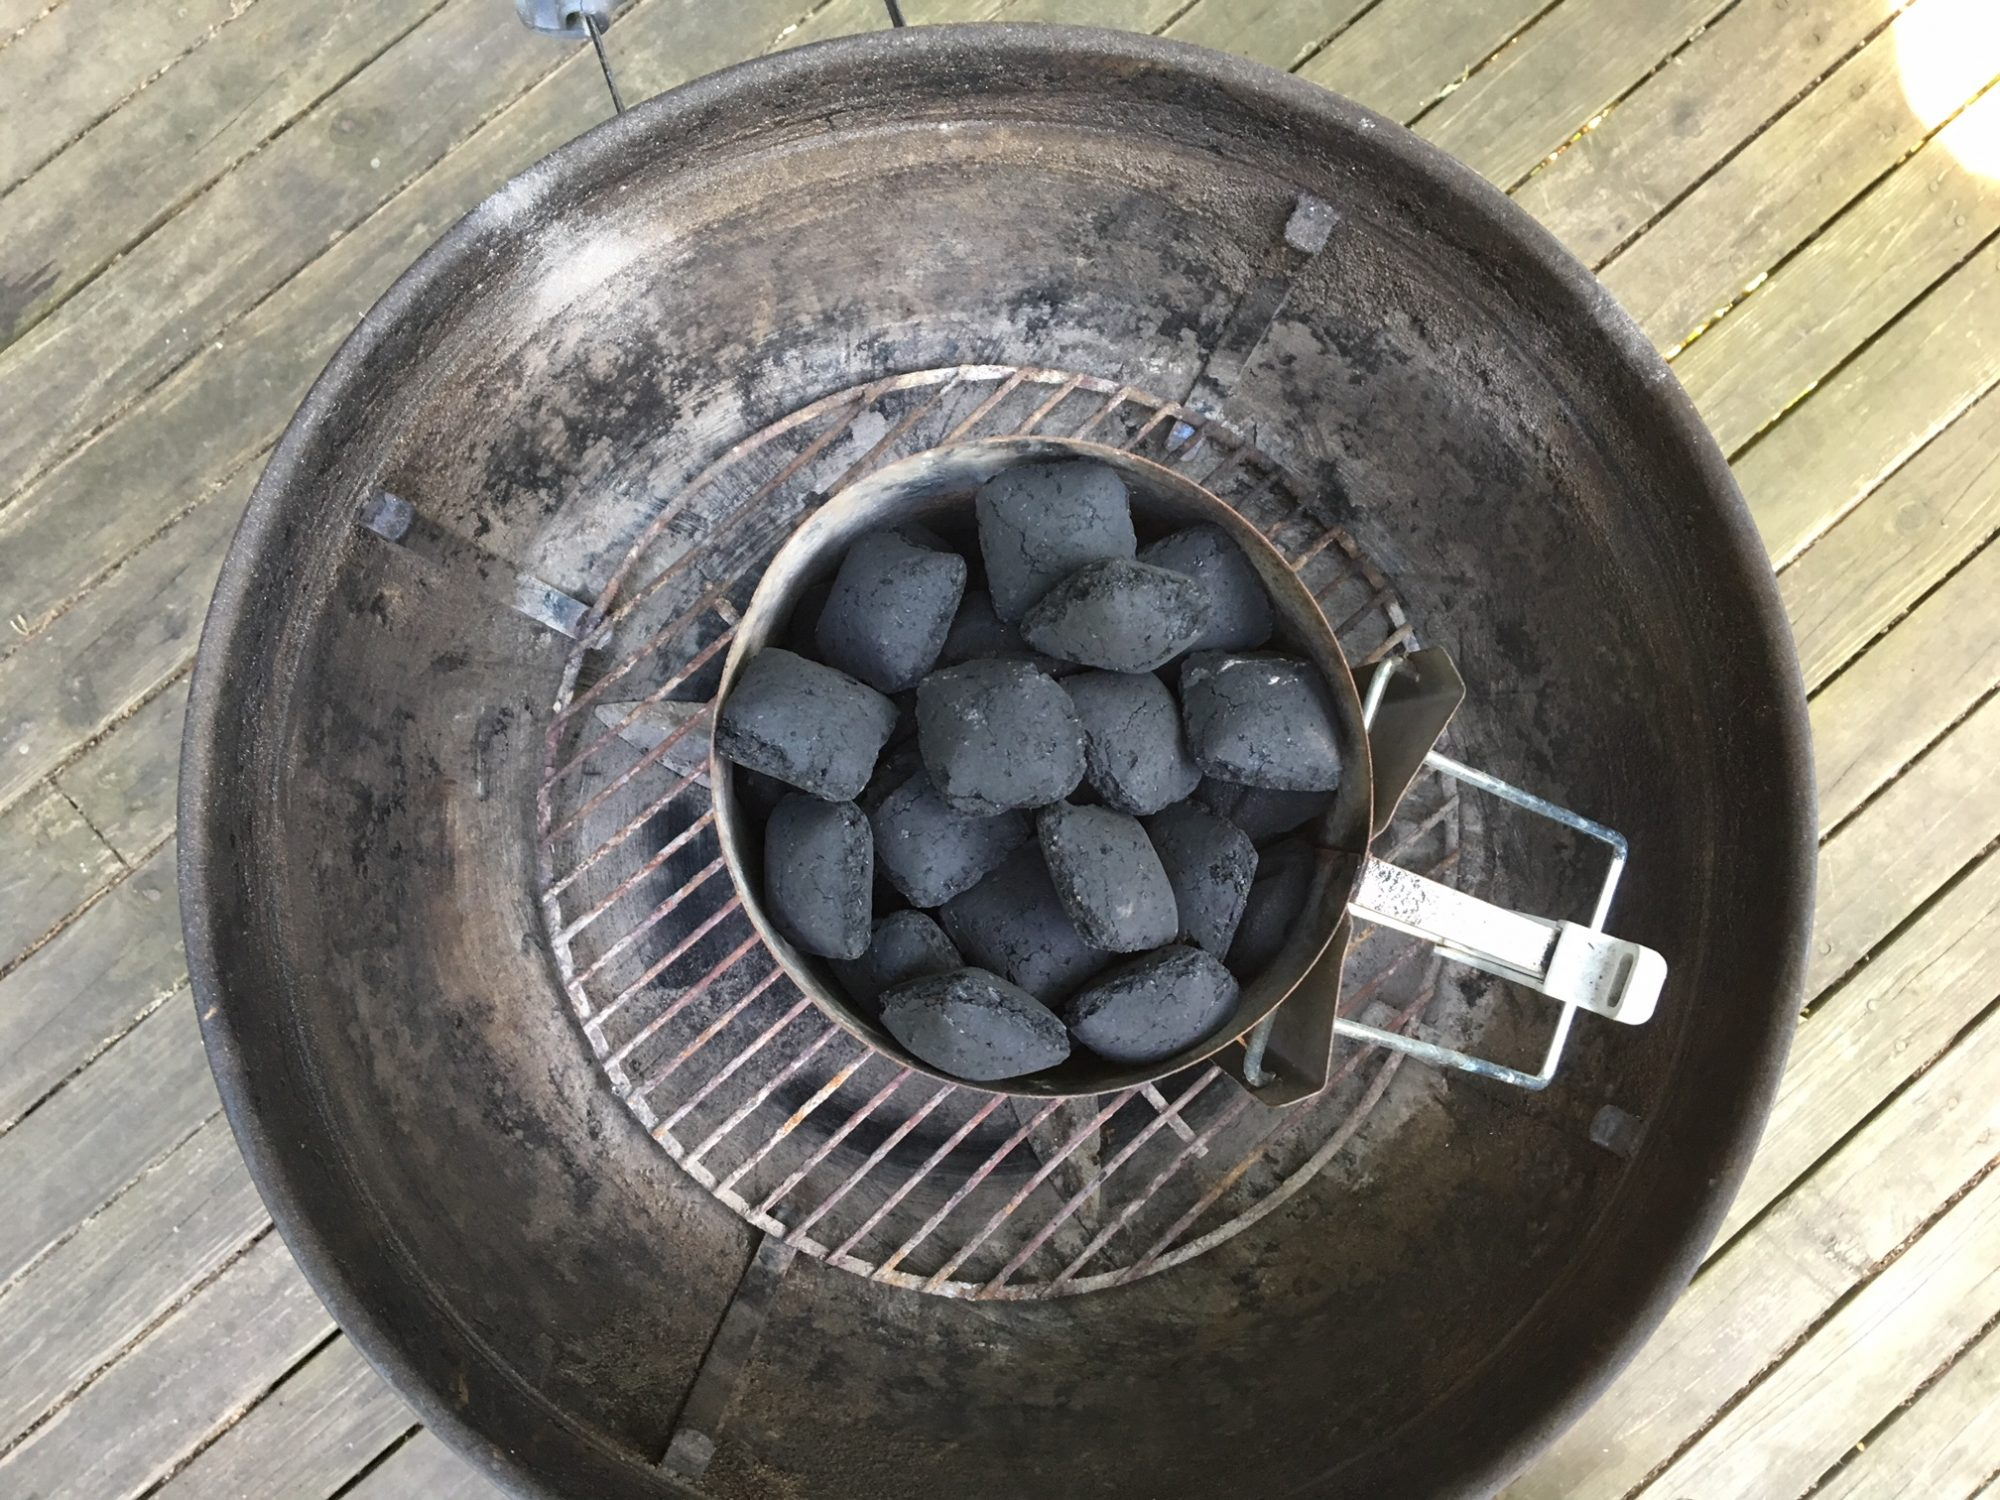 filled with coals